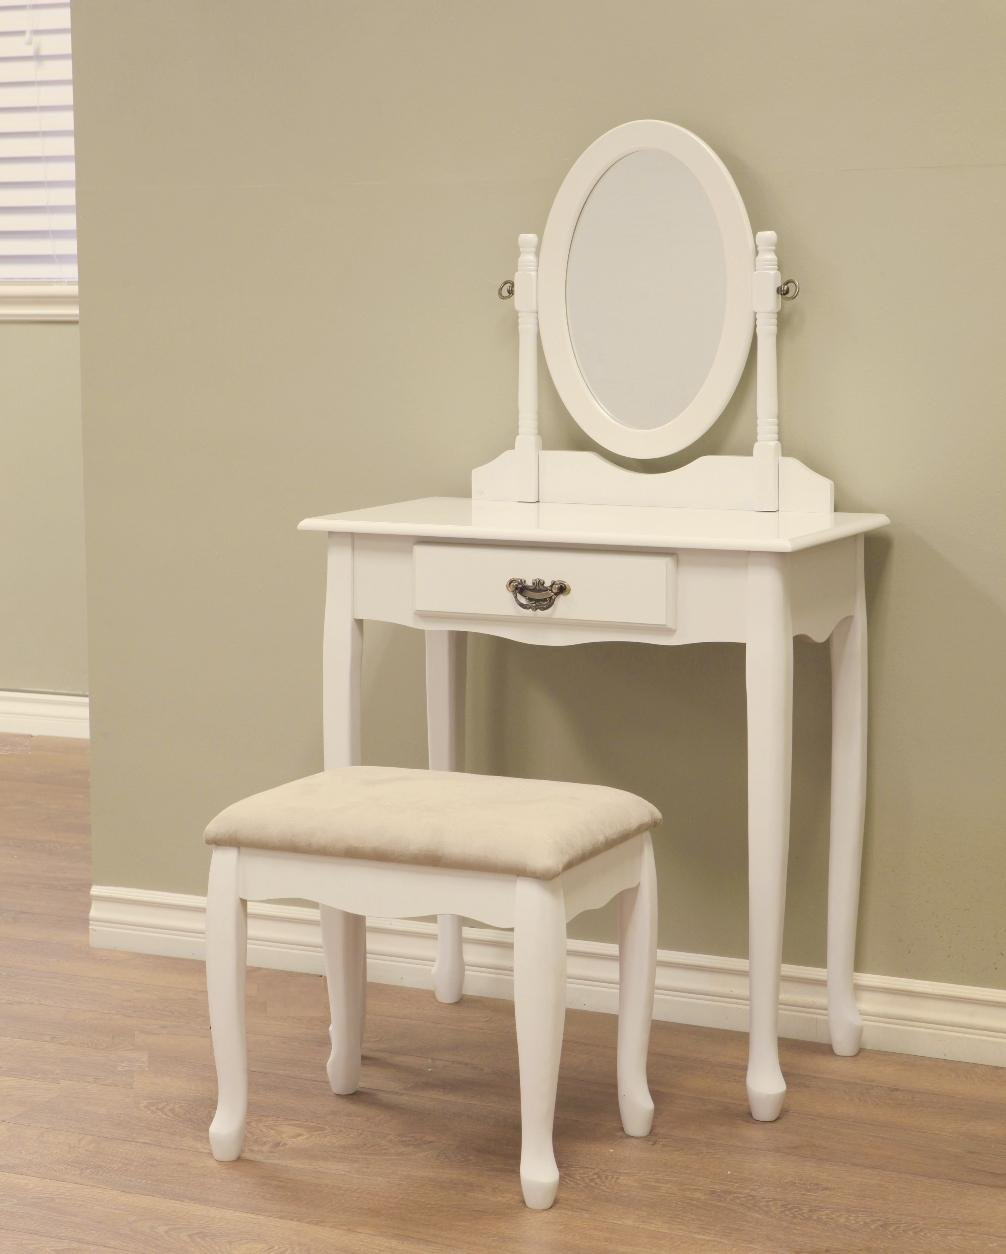 Vanity Dressing Table Stool SET Bedroom Furniture White Storage Drawer MIRROR